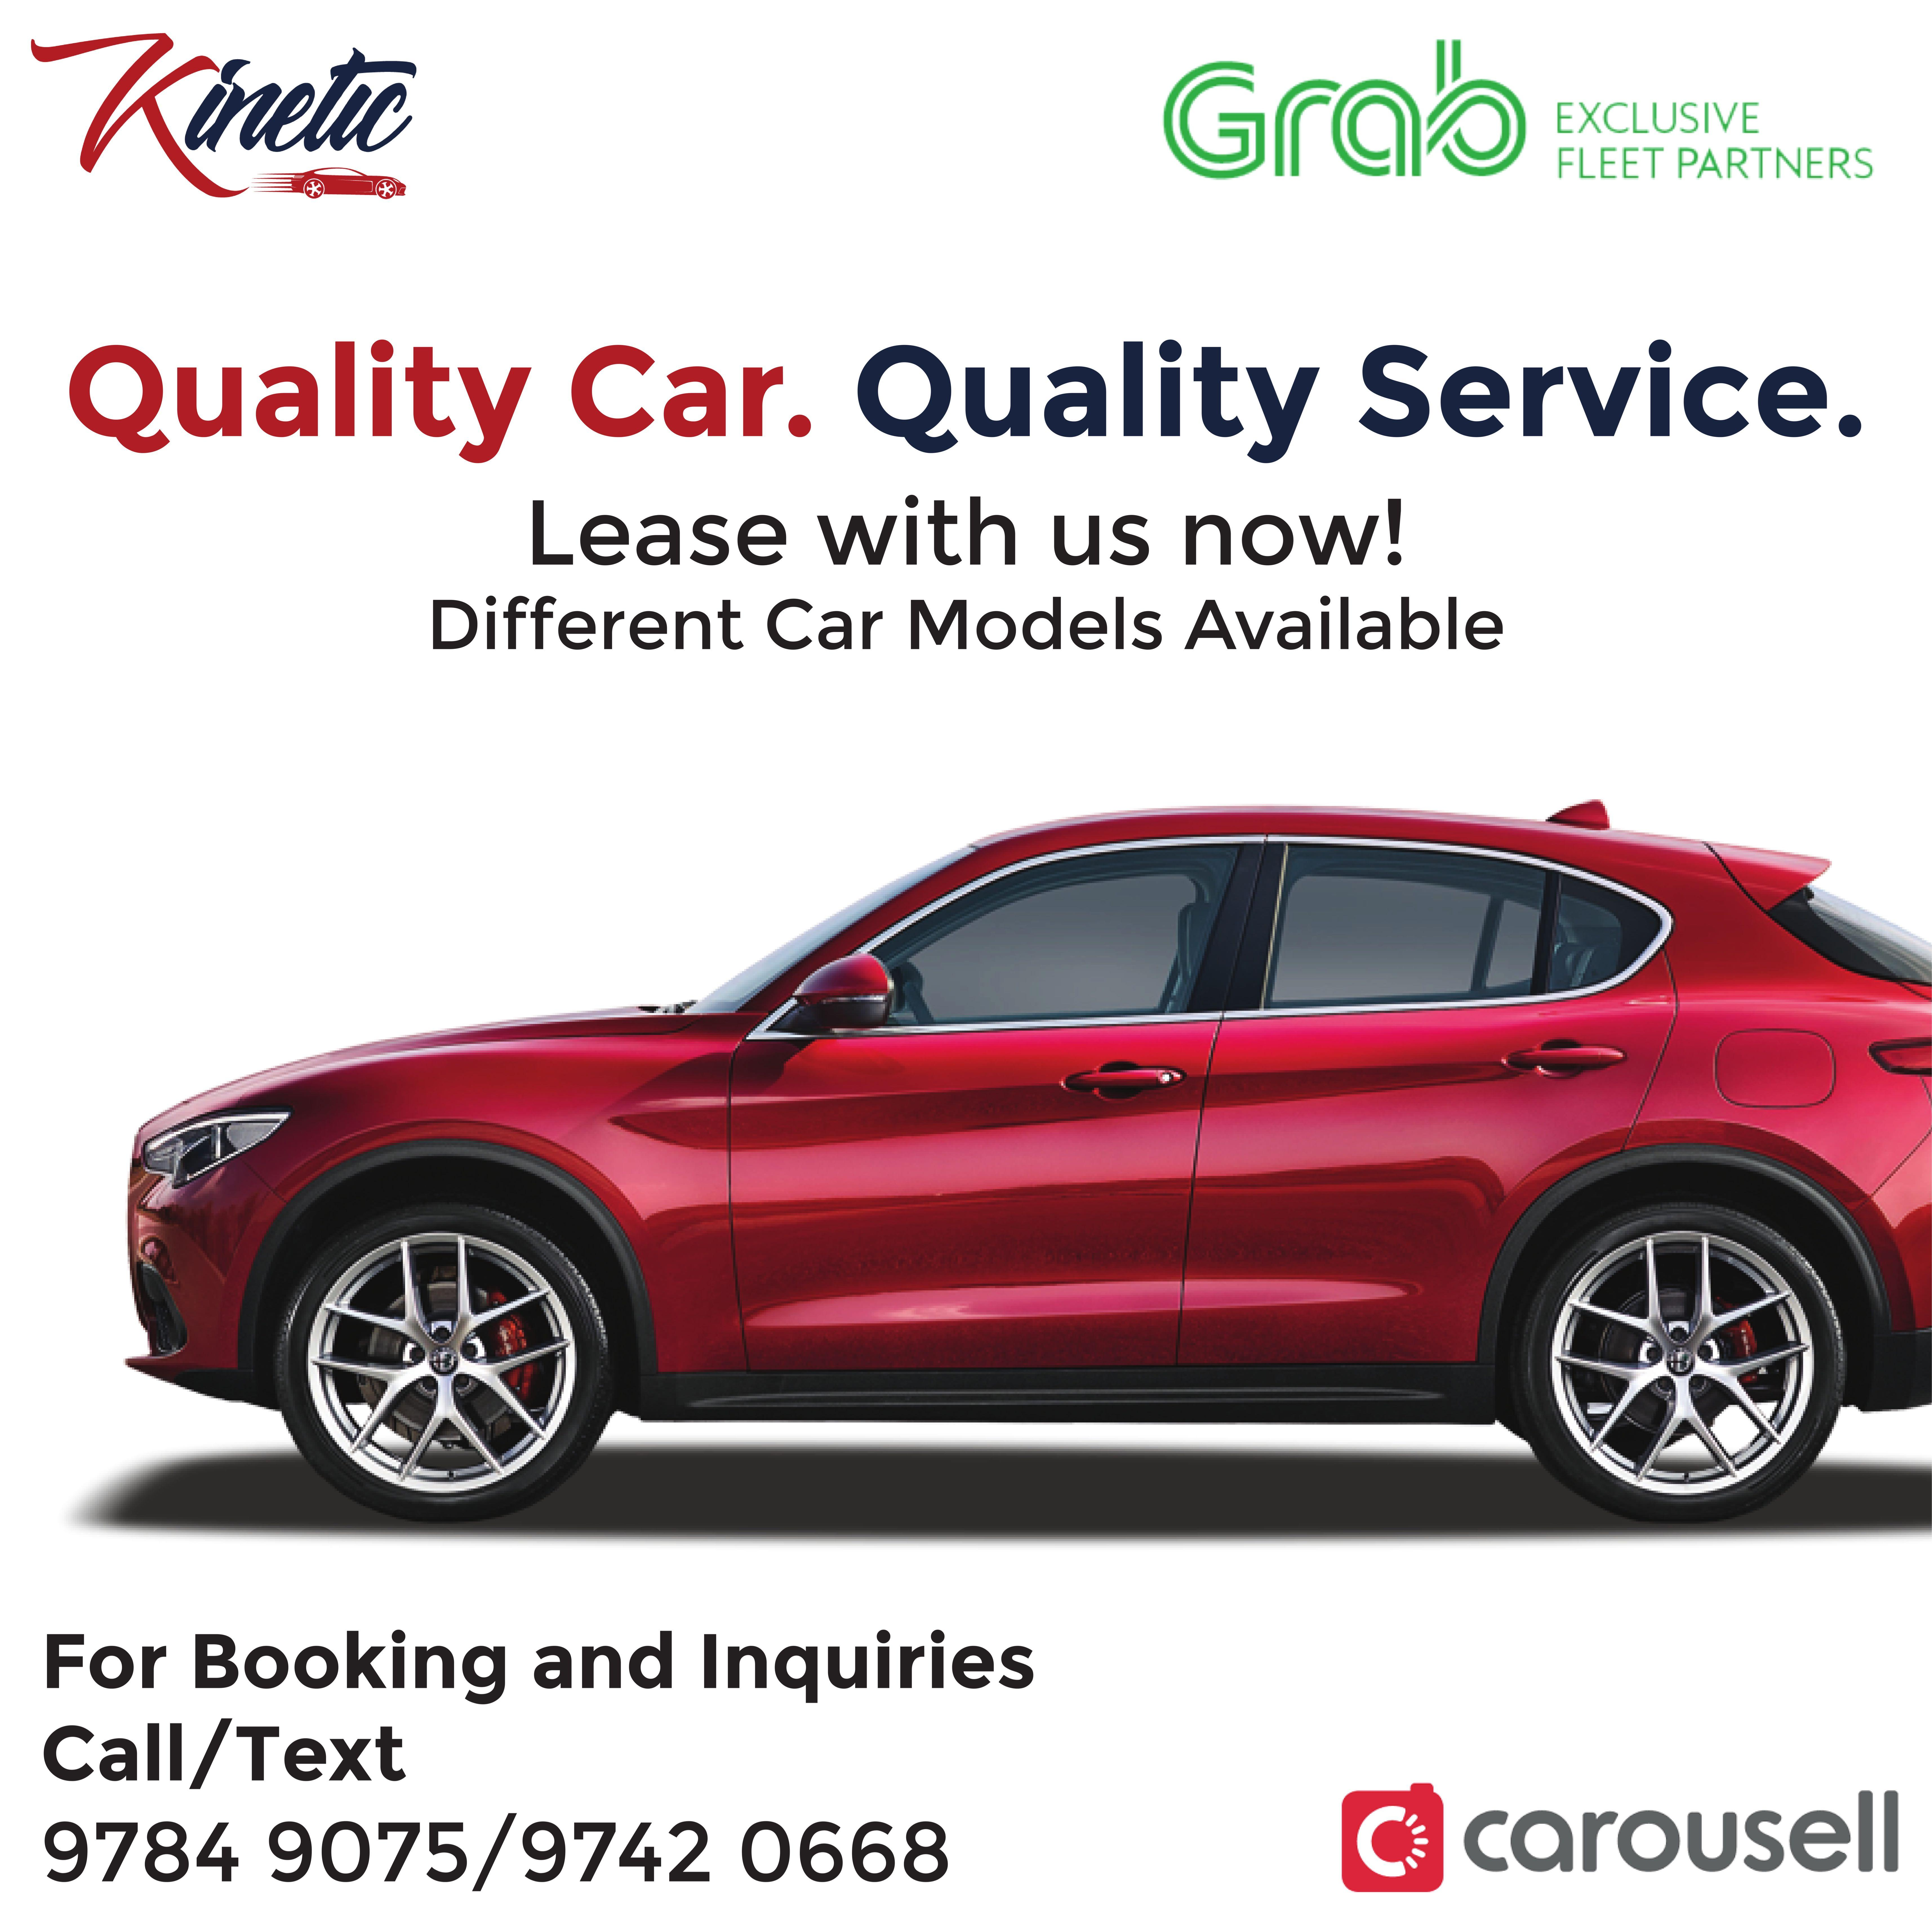 Cheap and Affordable Car for Rent